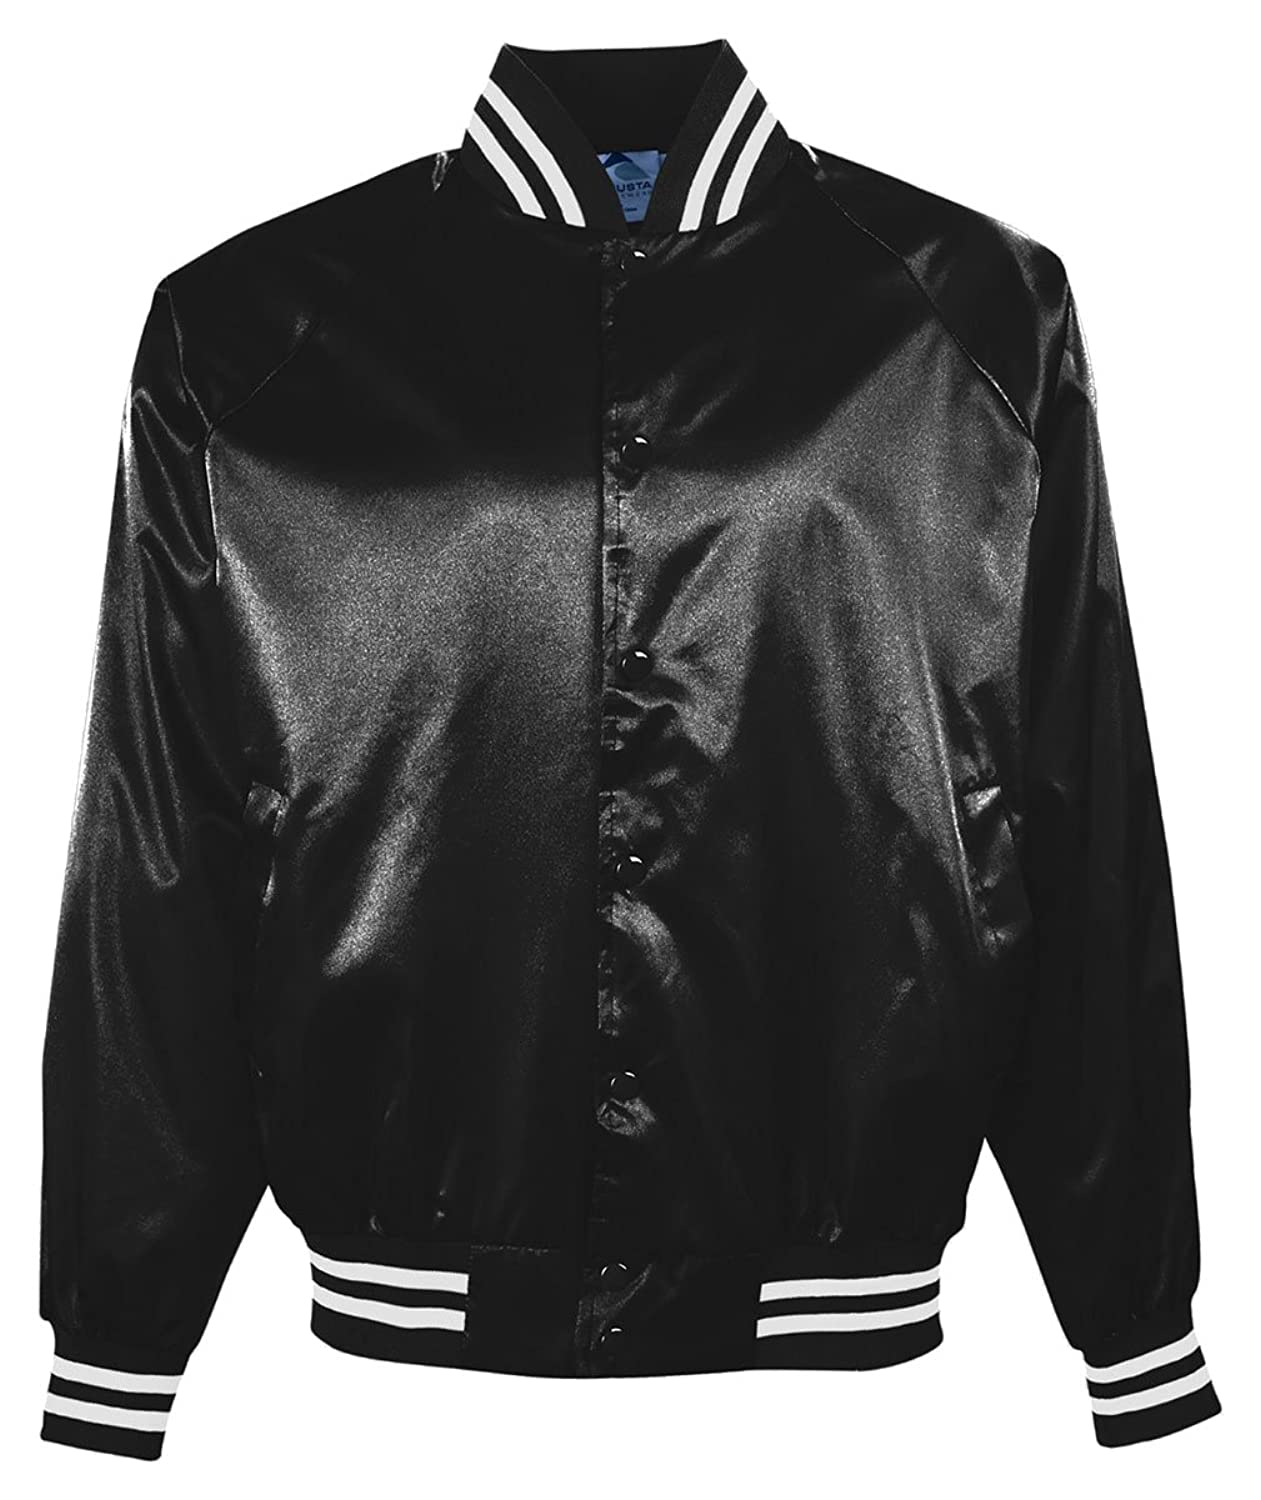 Amazon.com: Adult Satin Baseball Jacket with Striped Trim From ...